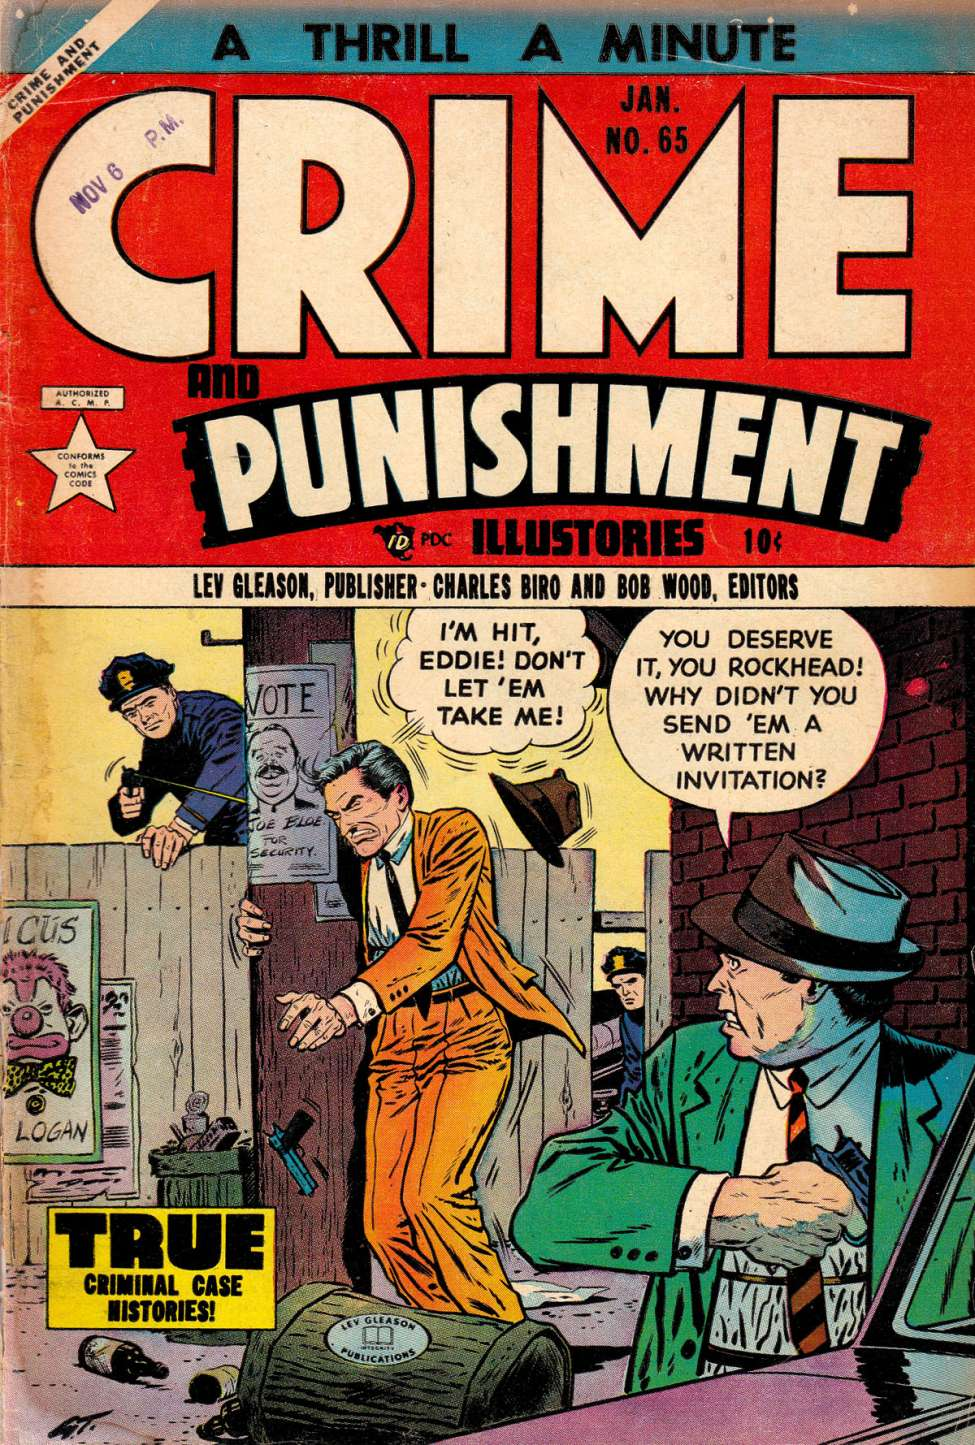 essay of crime and punishment